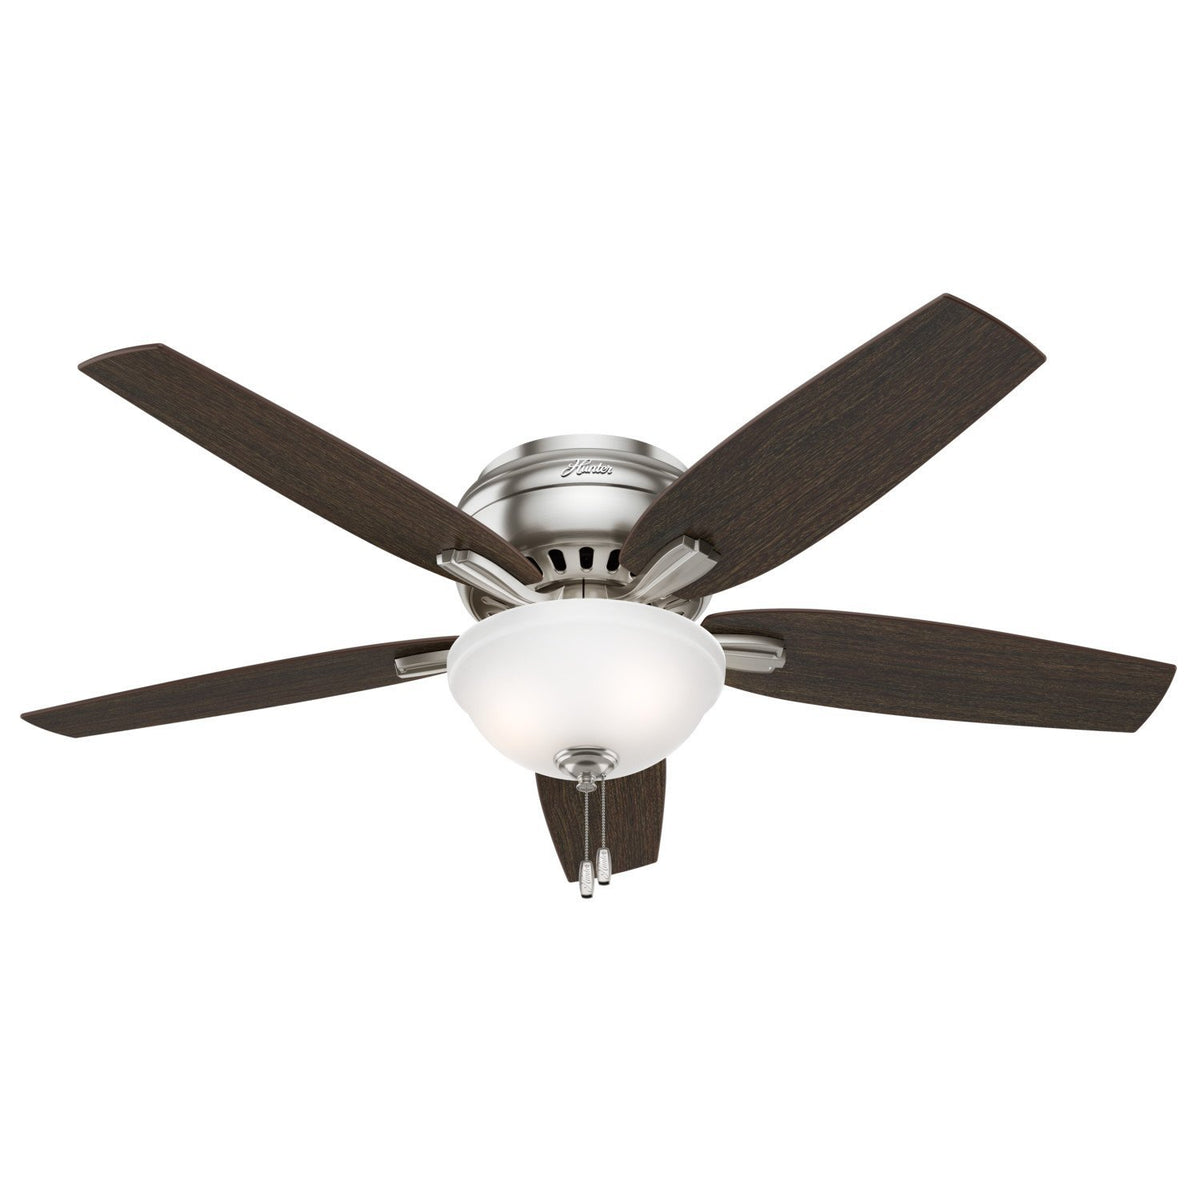 Newsome Low Profile With Light 52 Inch Ceiling Fan